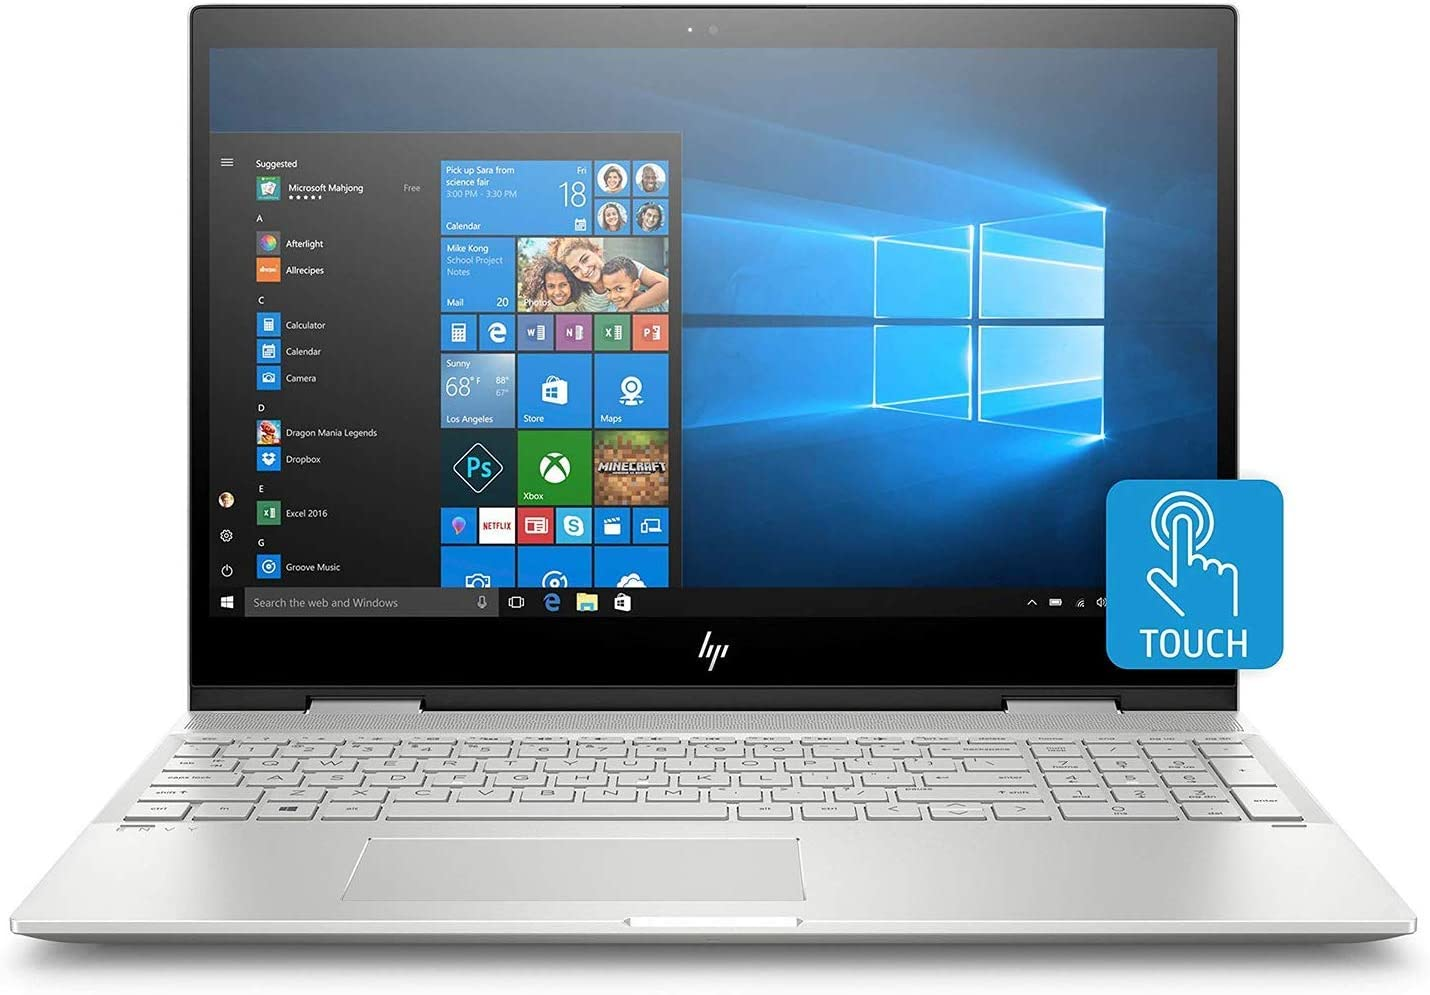 "Newest HP Envy x360 15t Touch Quad Core with Stylus Pen, Intel i7, FHD IPS Micro-Edge WLED, HP Warranty, Windows 10, Bang & Olufsen 15.6"" Convertible 2-in-1 Laptop PC (16GB DDR4, 1TB PCIe NVMe SSD)"